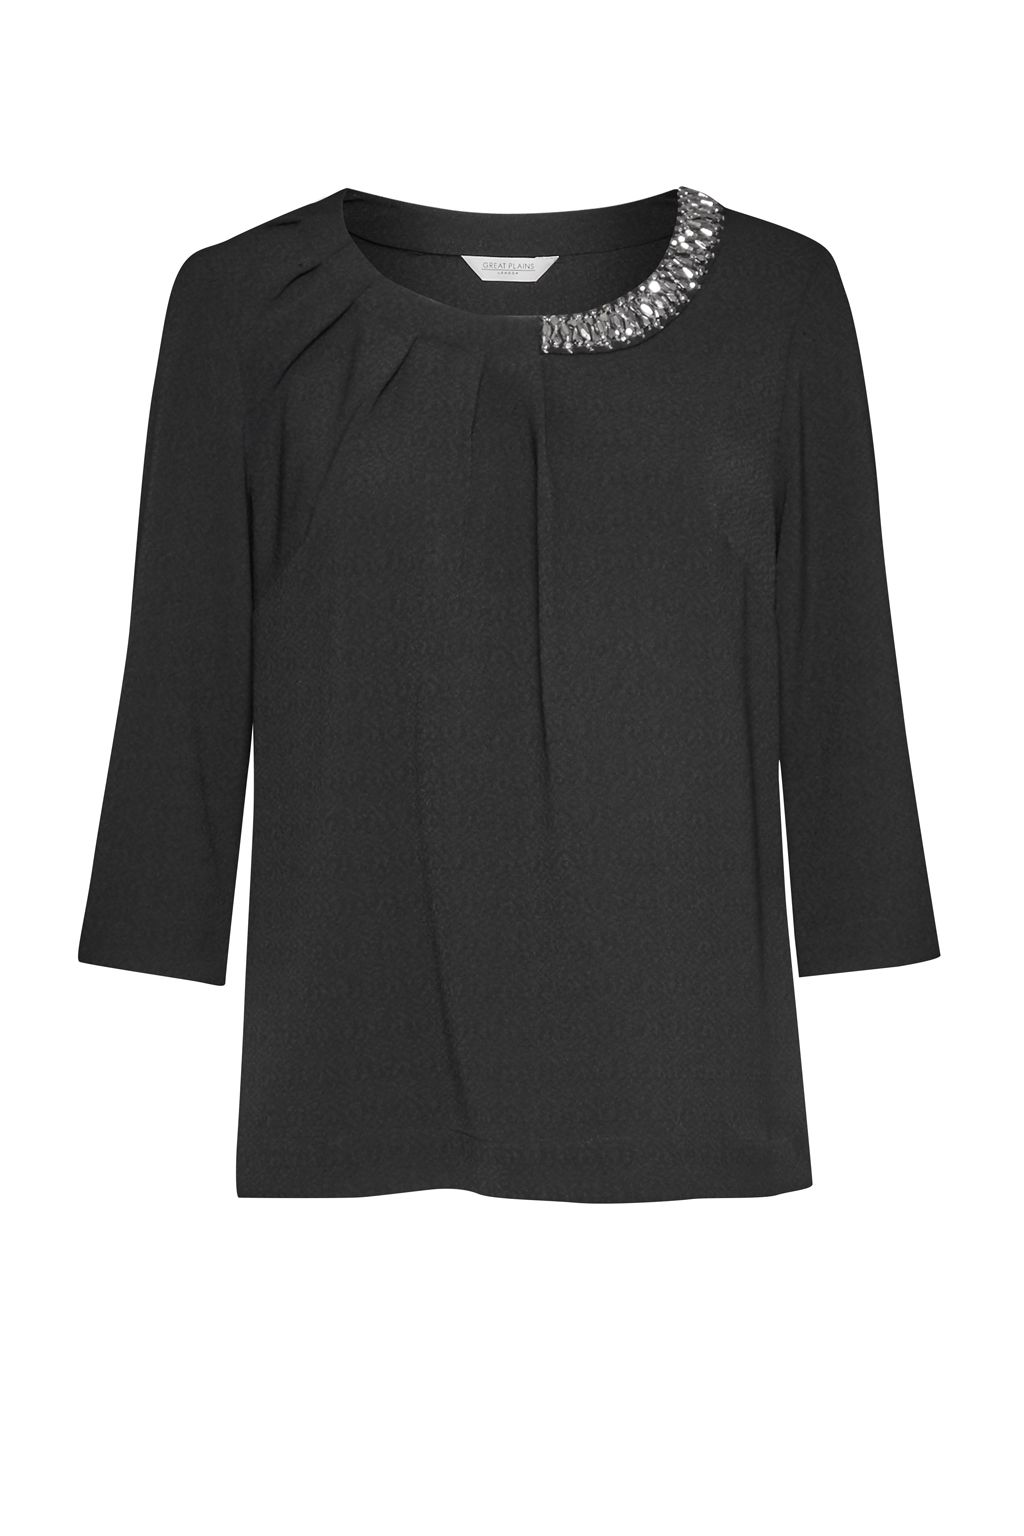 Great Plains Lapland Crepe Embellished Top, Black